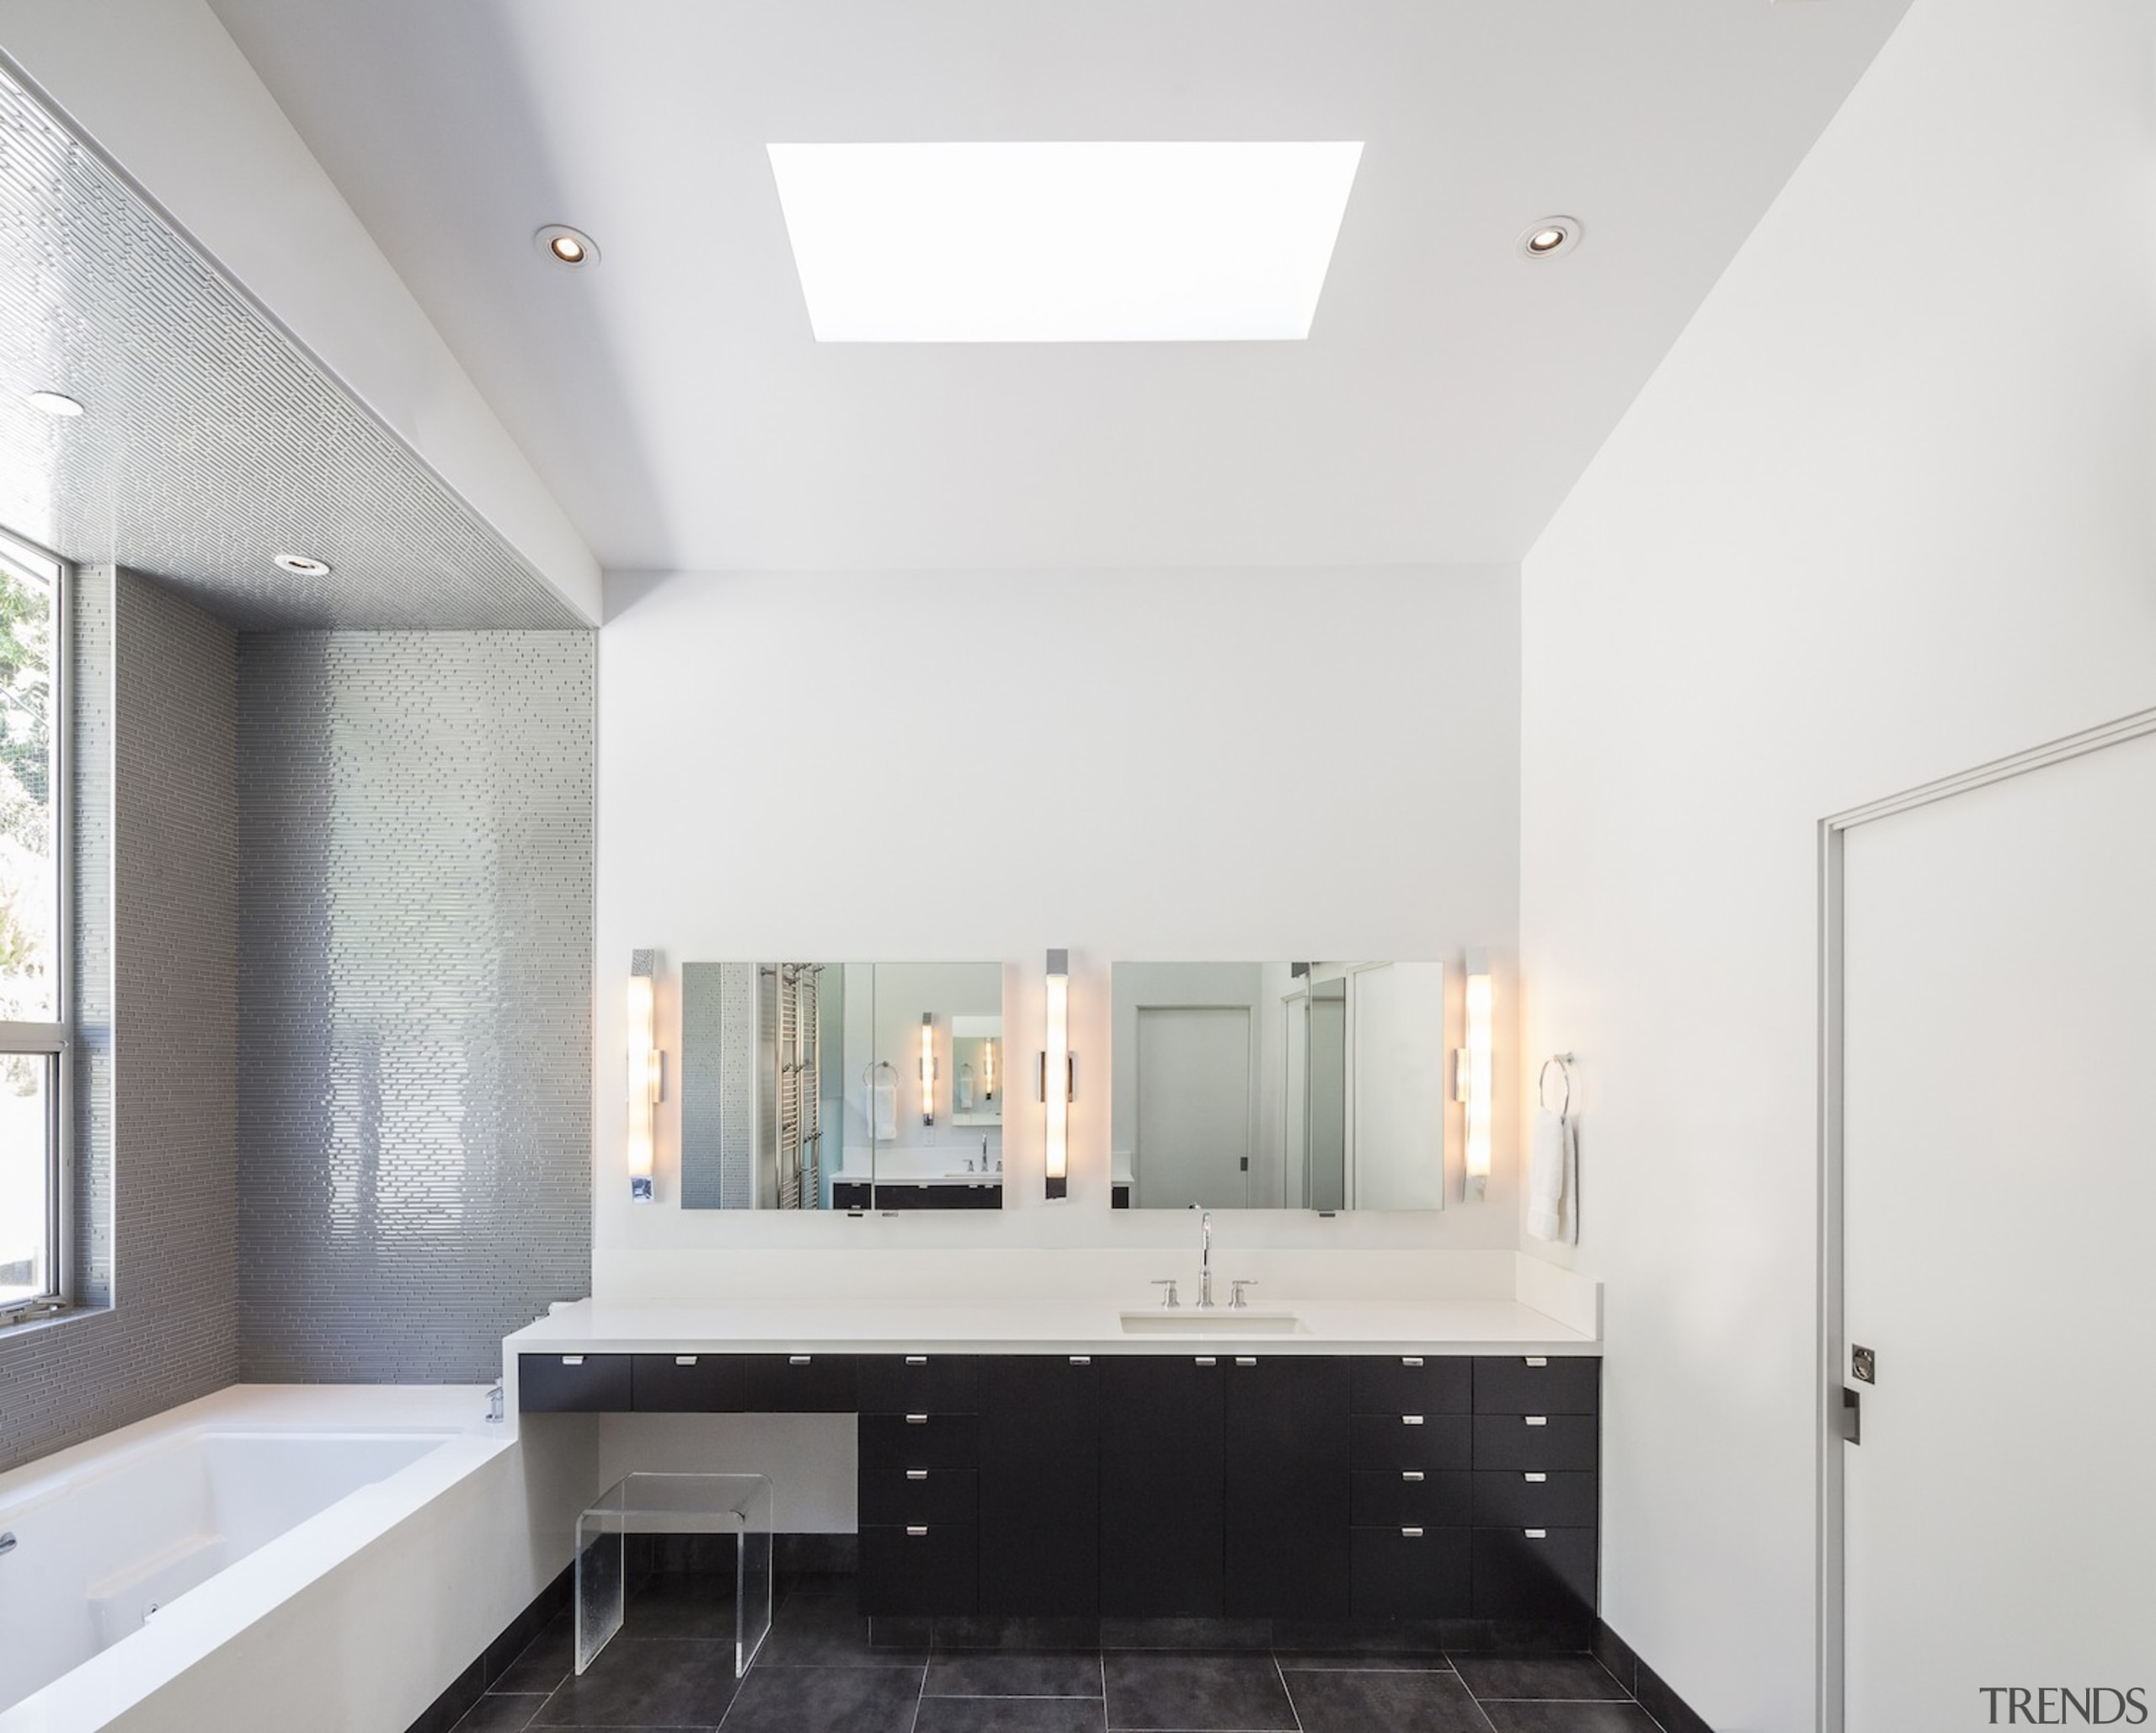 Anx View 44 - architecture | bathroom | architecture, bathroom, ceiling, daylighting, floor, home, house, interior design, real estate, room, white